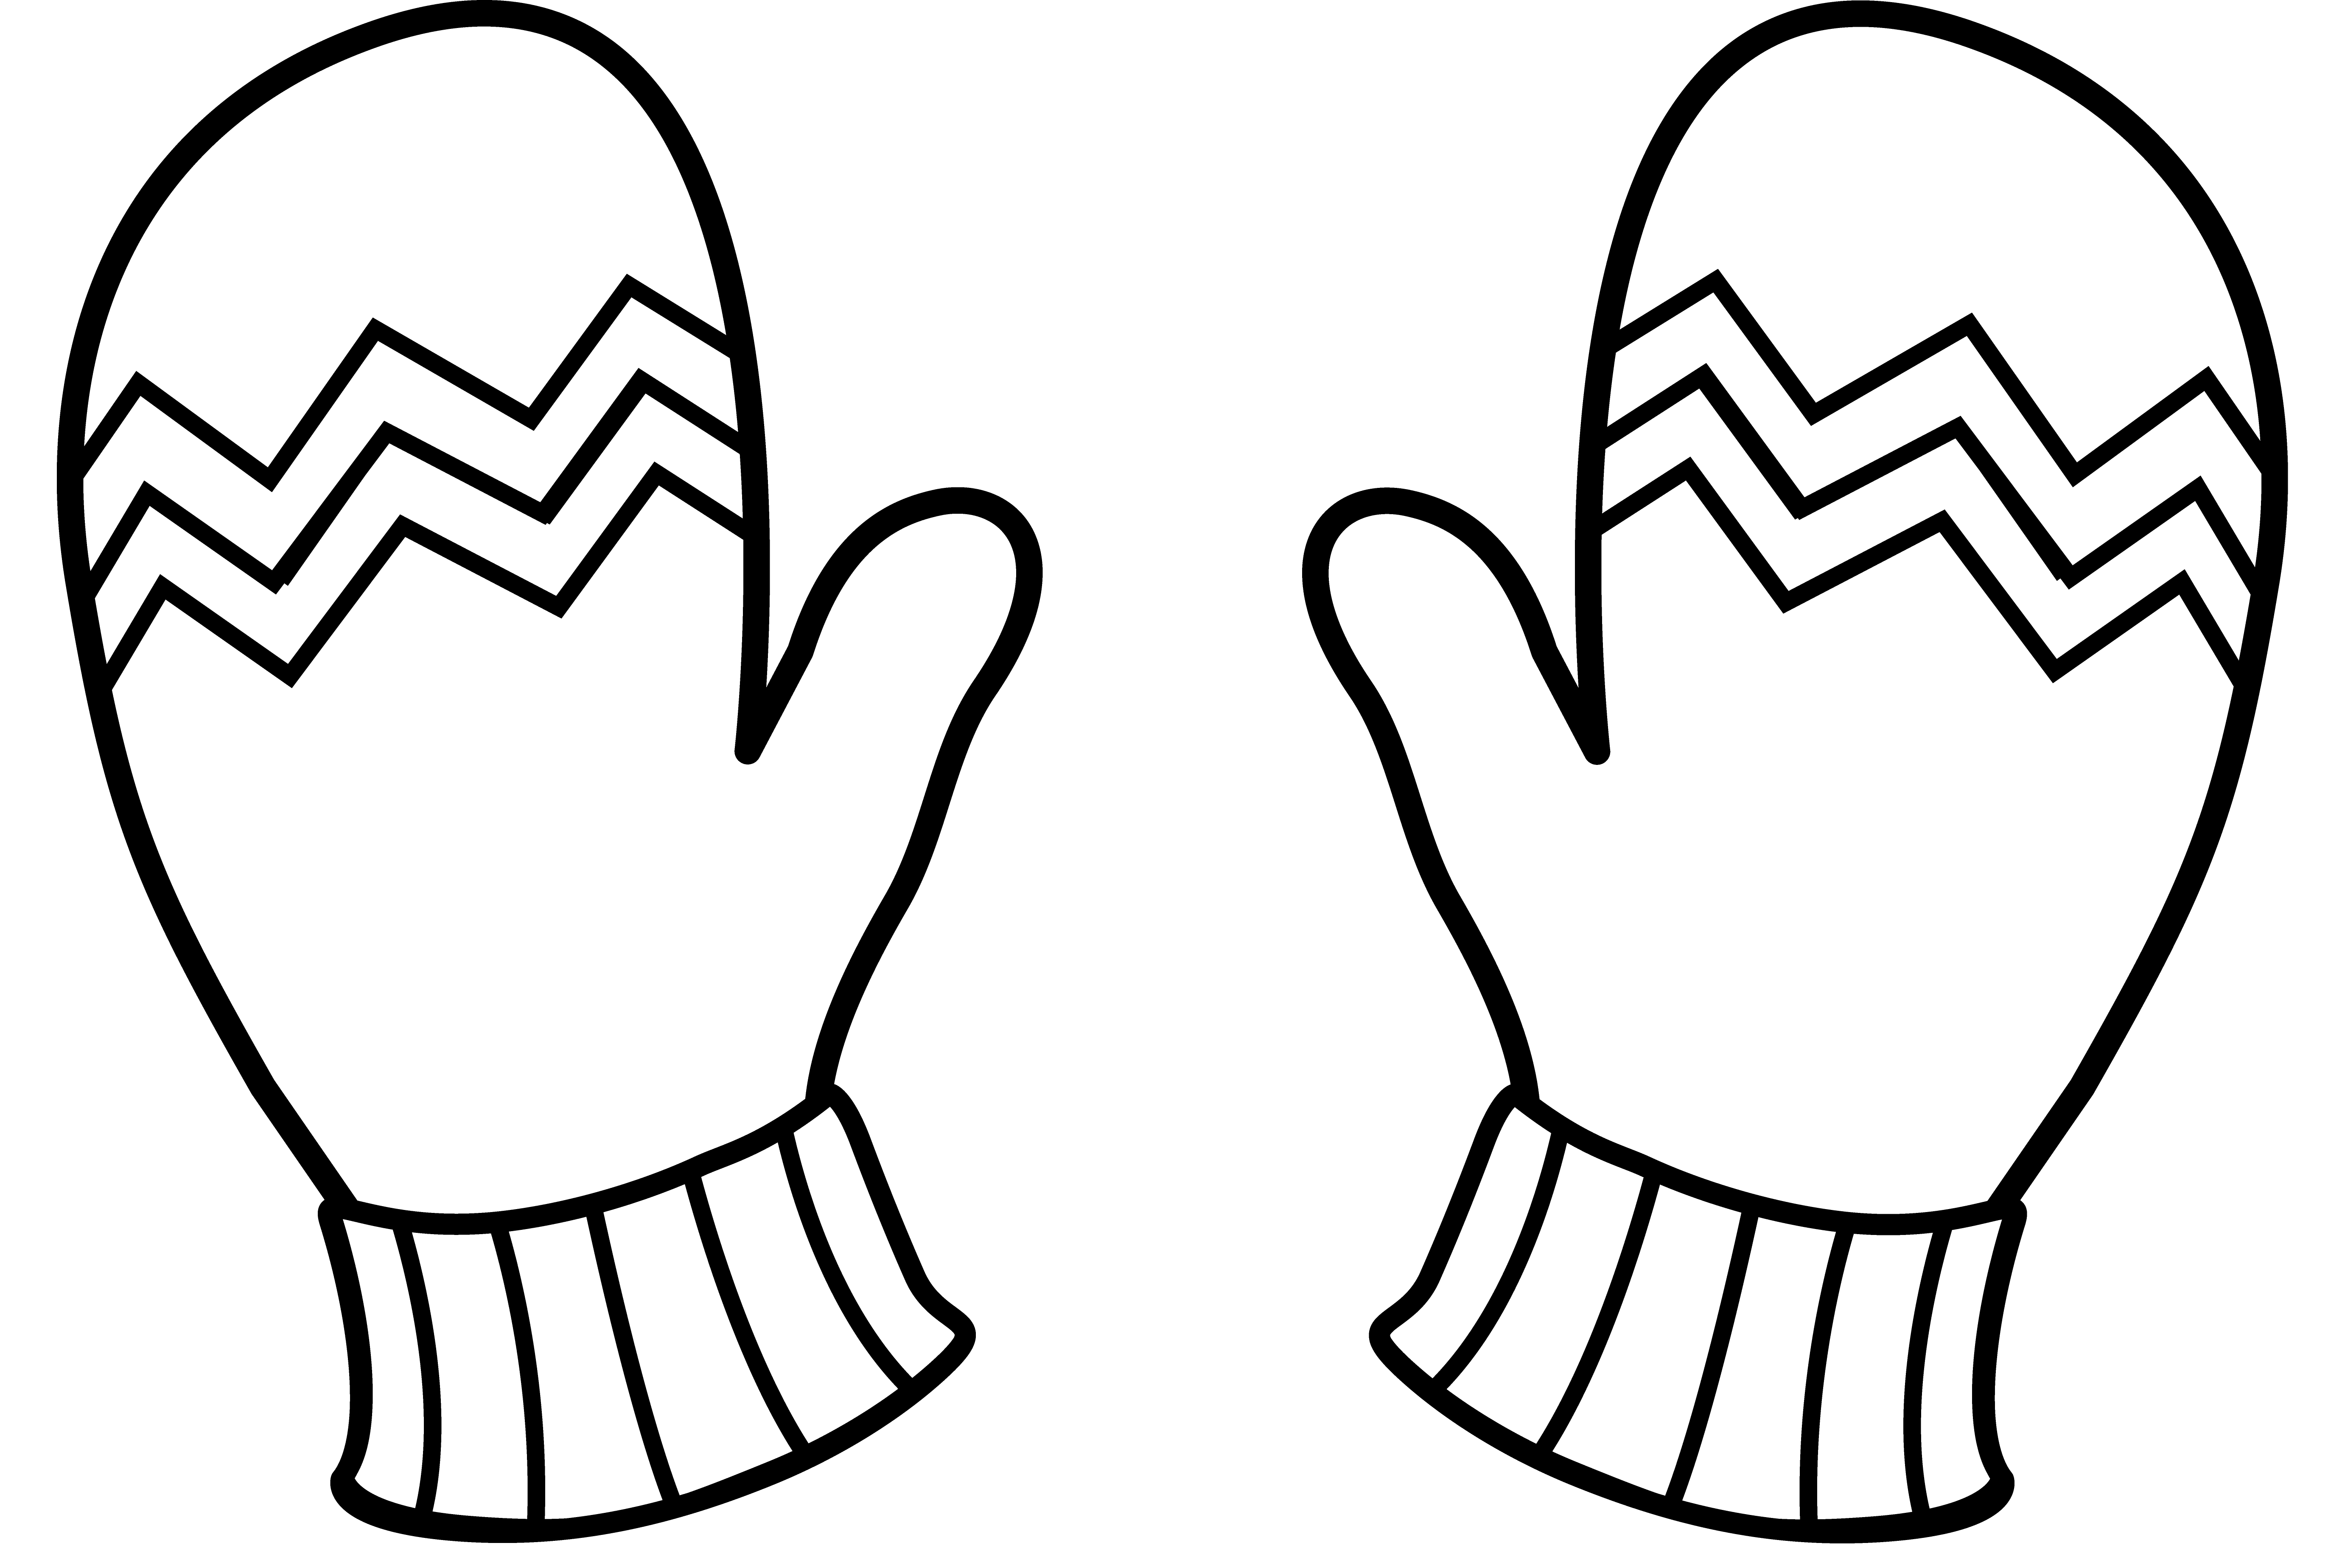 graphic about Printable Mittens named Selection of Mittens clipart No cost down load most straightforward Mittens